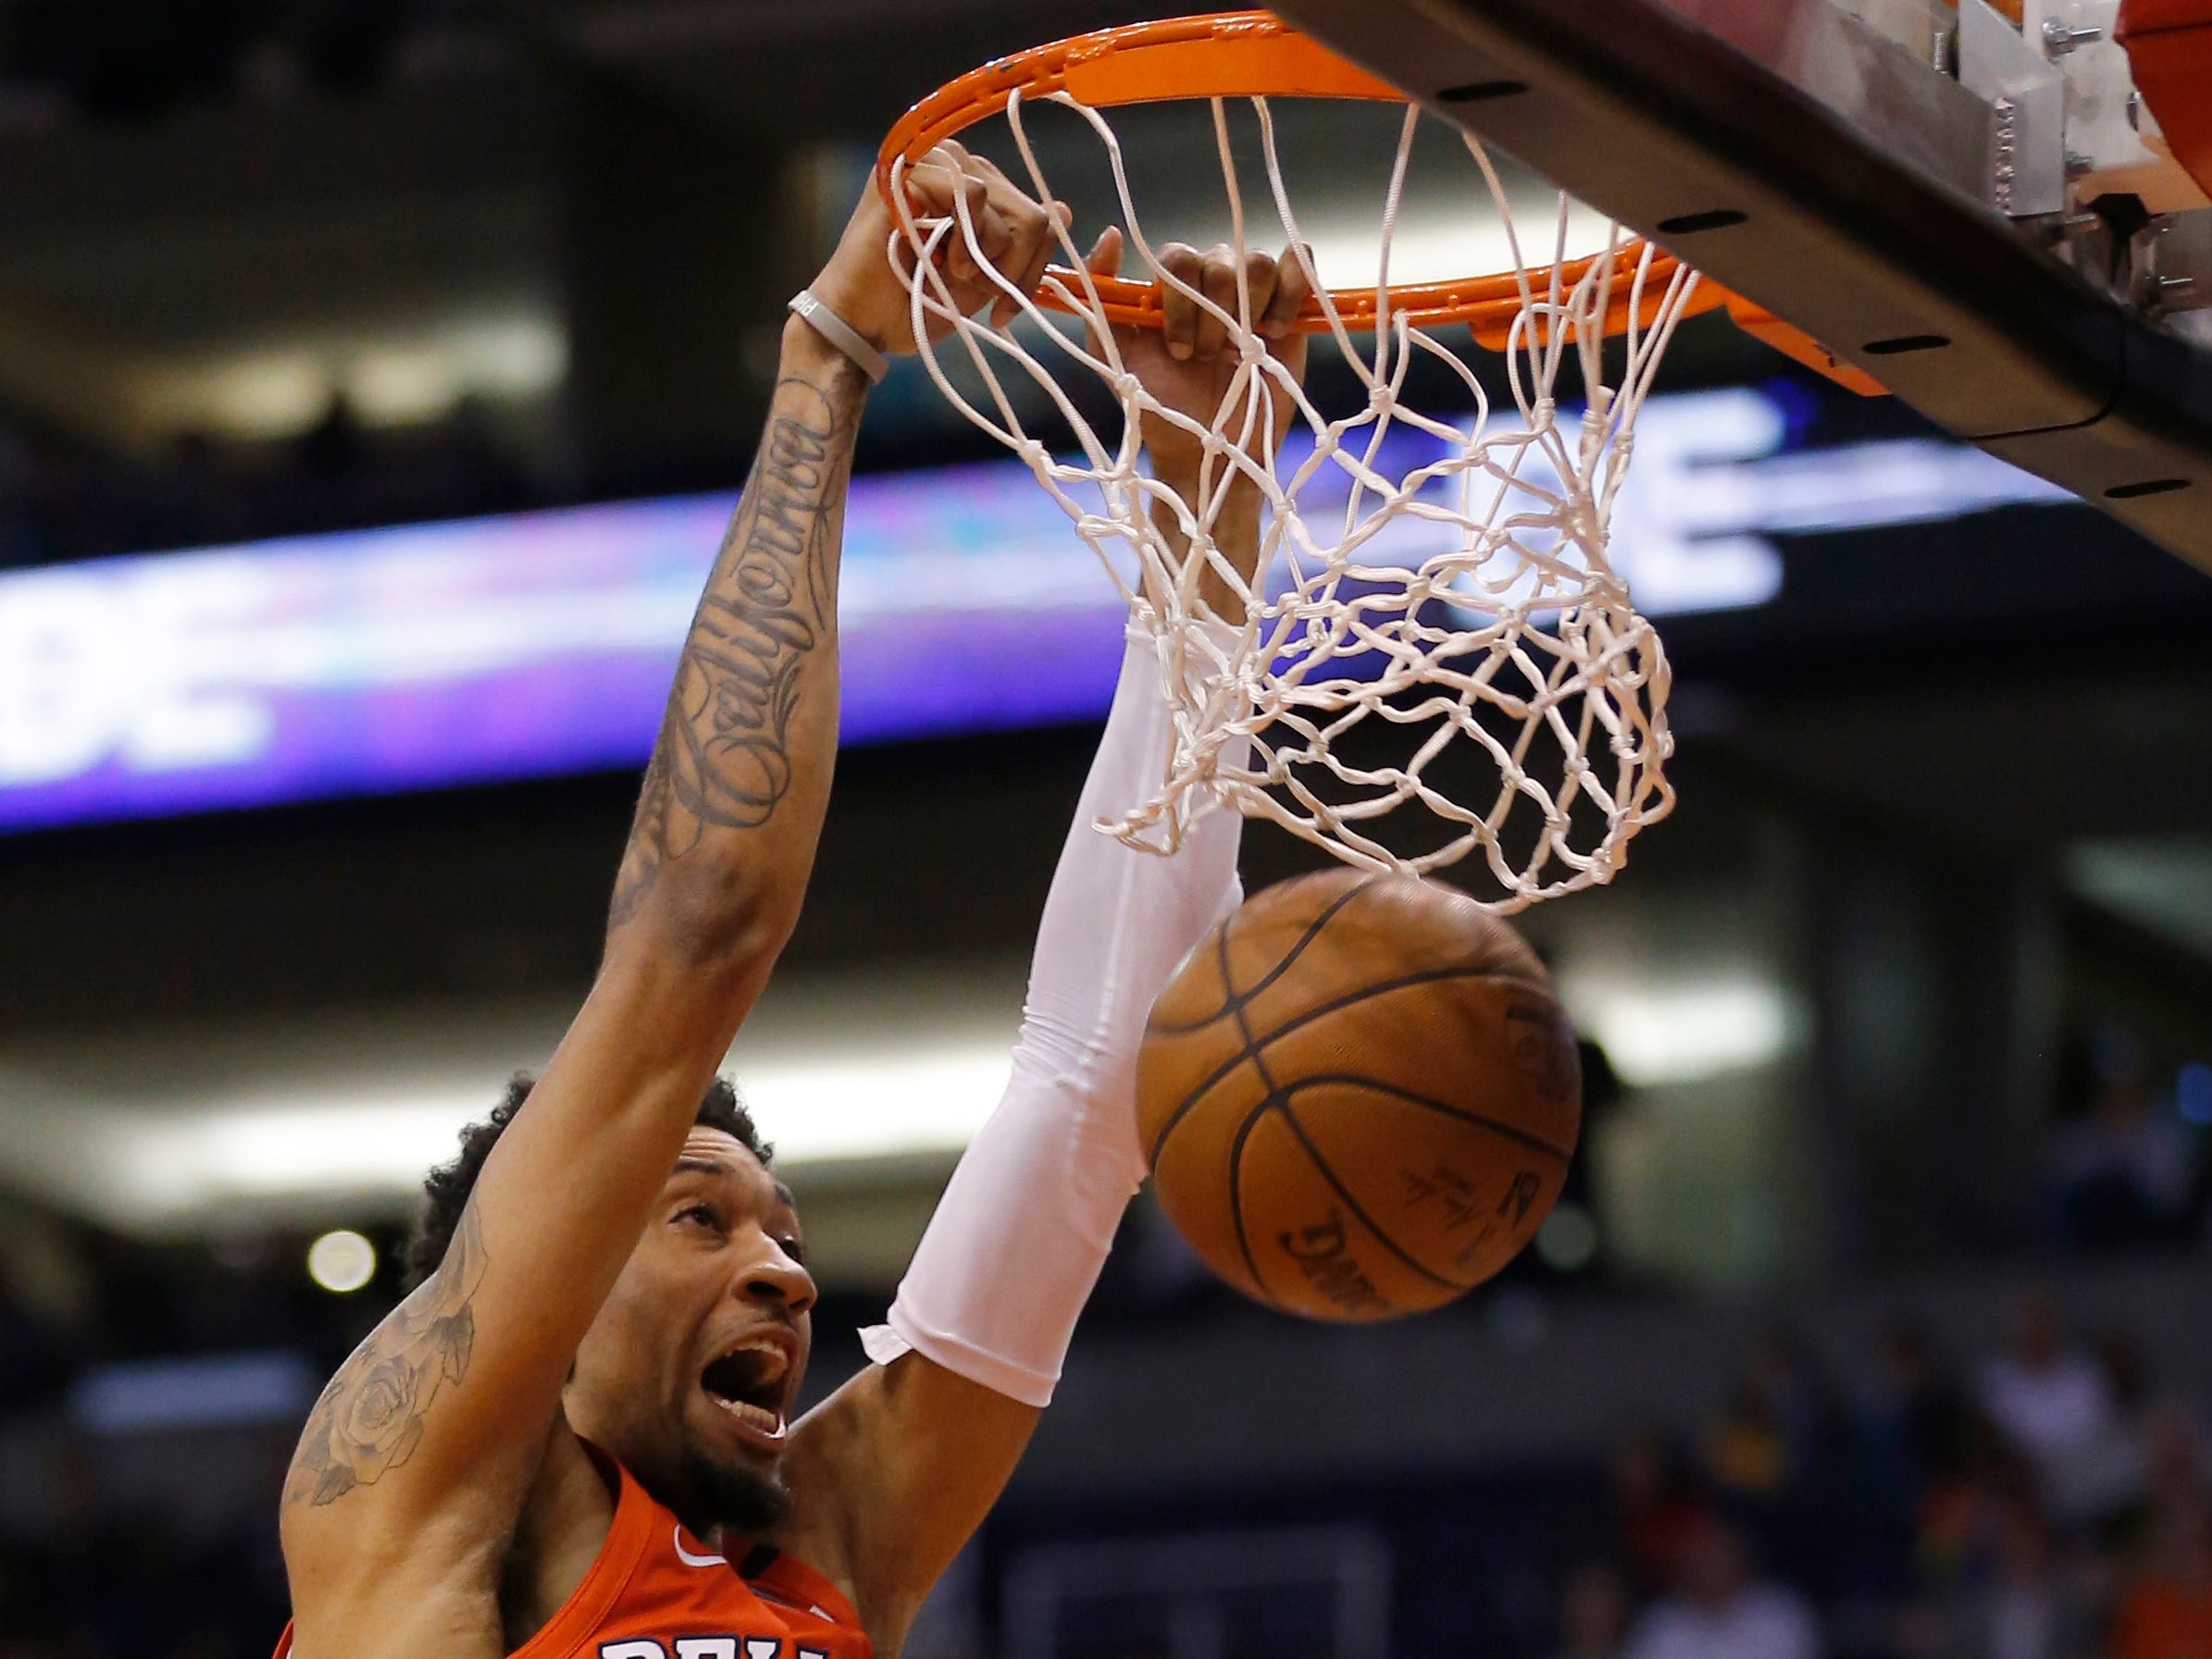 New Orleans Pelicans forward Christian Wood (35) dunks over Phoenix Suns forward Josh Jackson (20) during the first half of an NBA basketball game, Friday, April 5, 2019, in Phoenix. (AP Photo/Rick Scuteri)